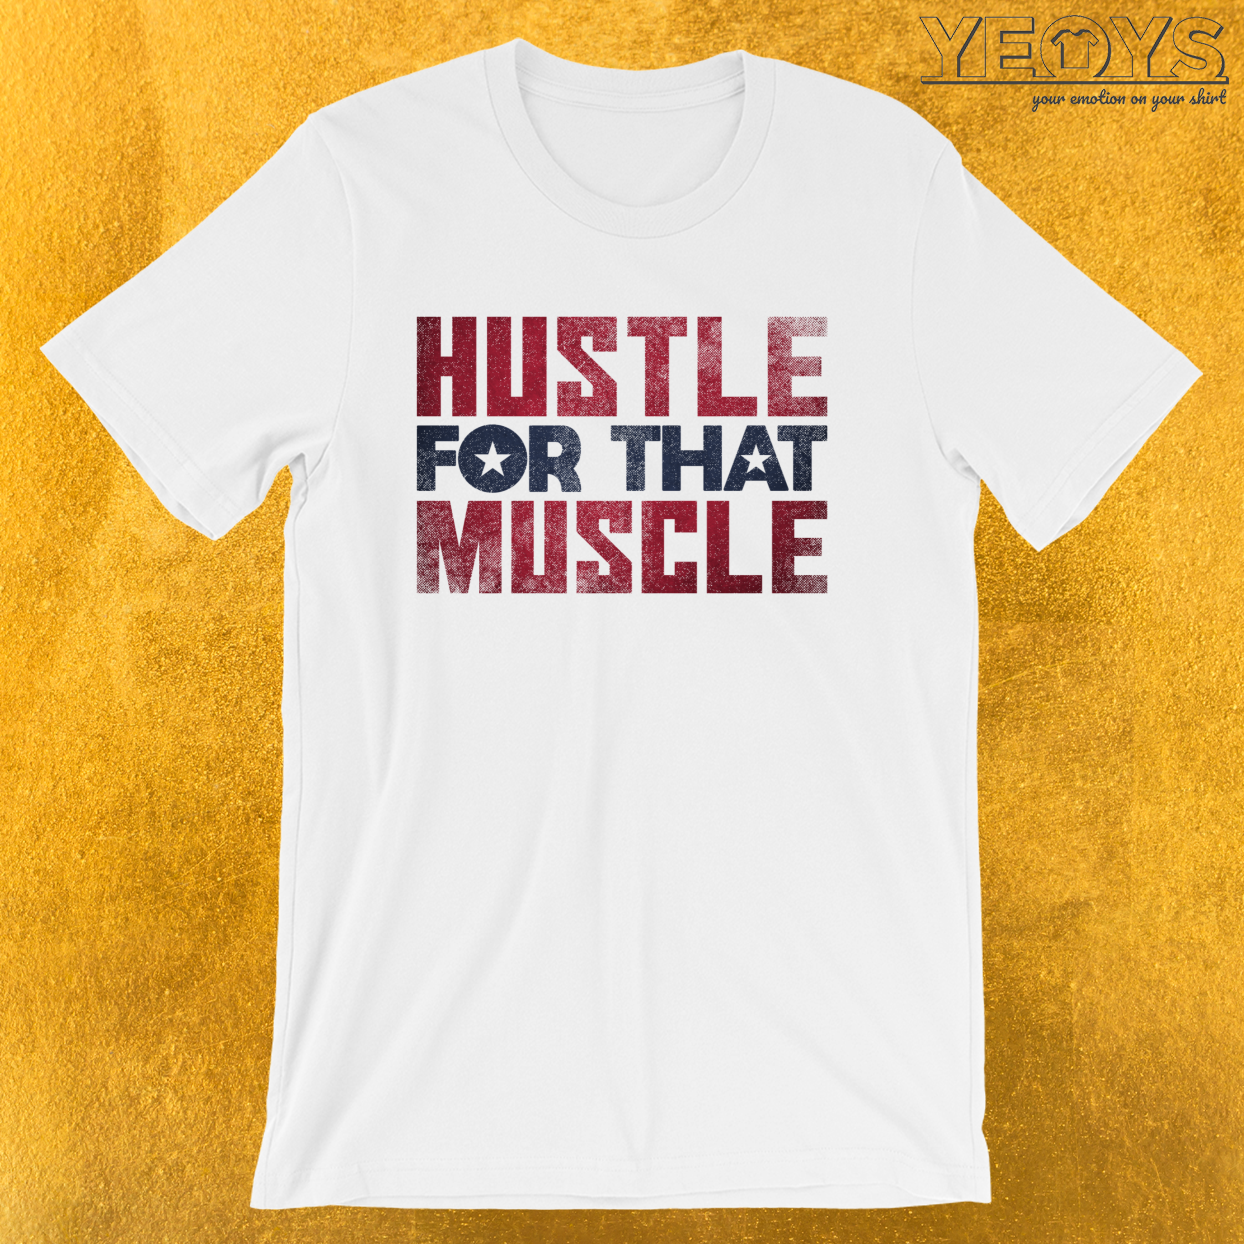 Hustle For That Muscle – Weightlifting Tee